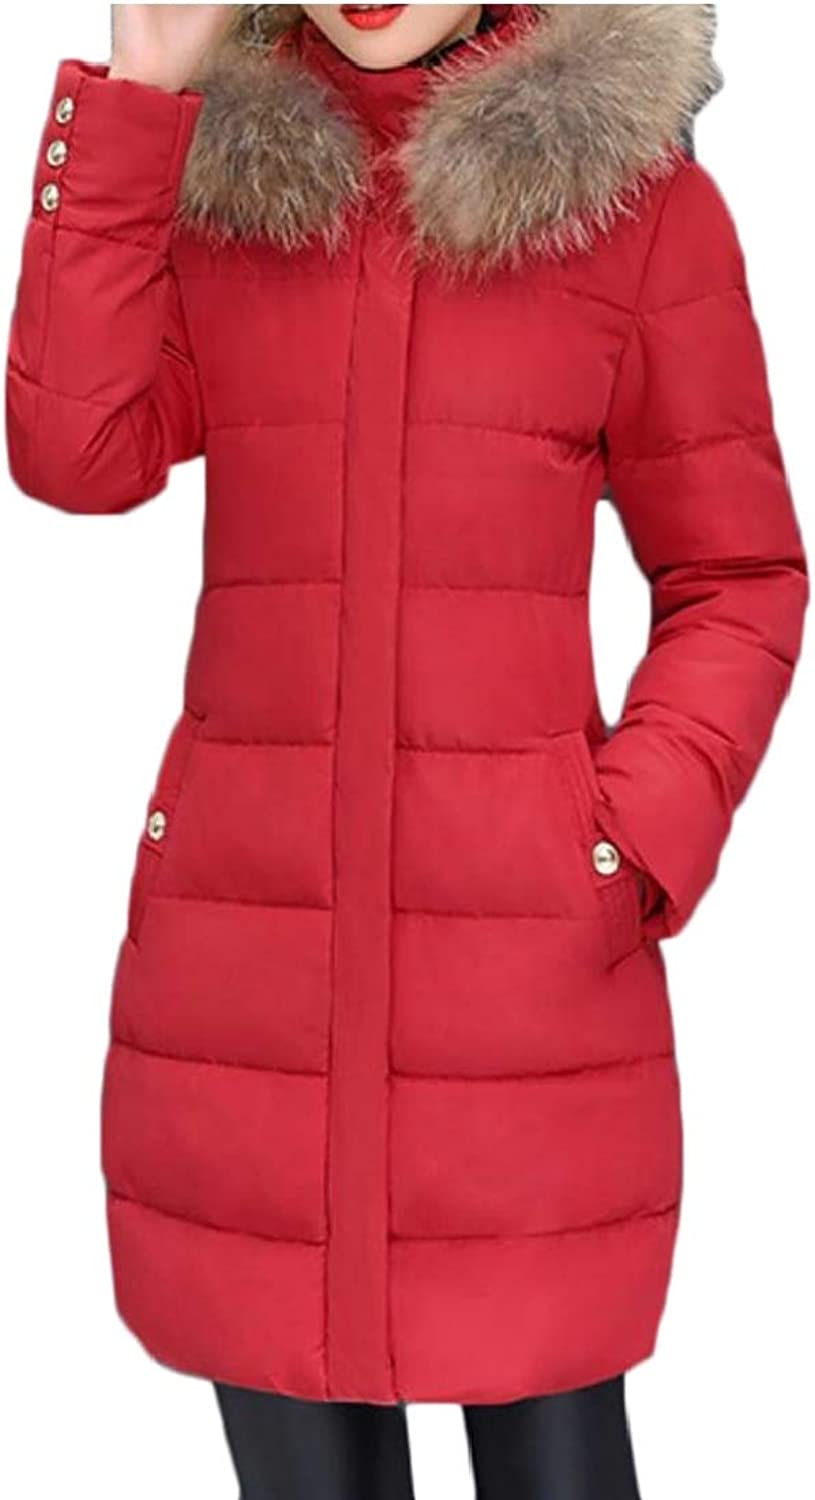 Maweisong Women's Winter Warm Faux Fur Hooded Parka Puffer Jackets Down Coat